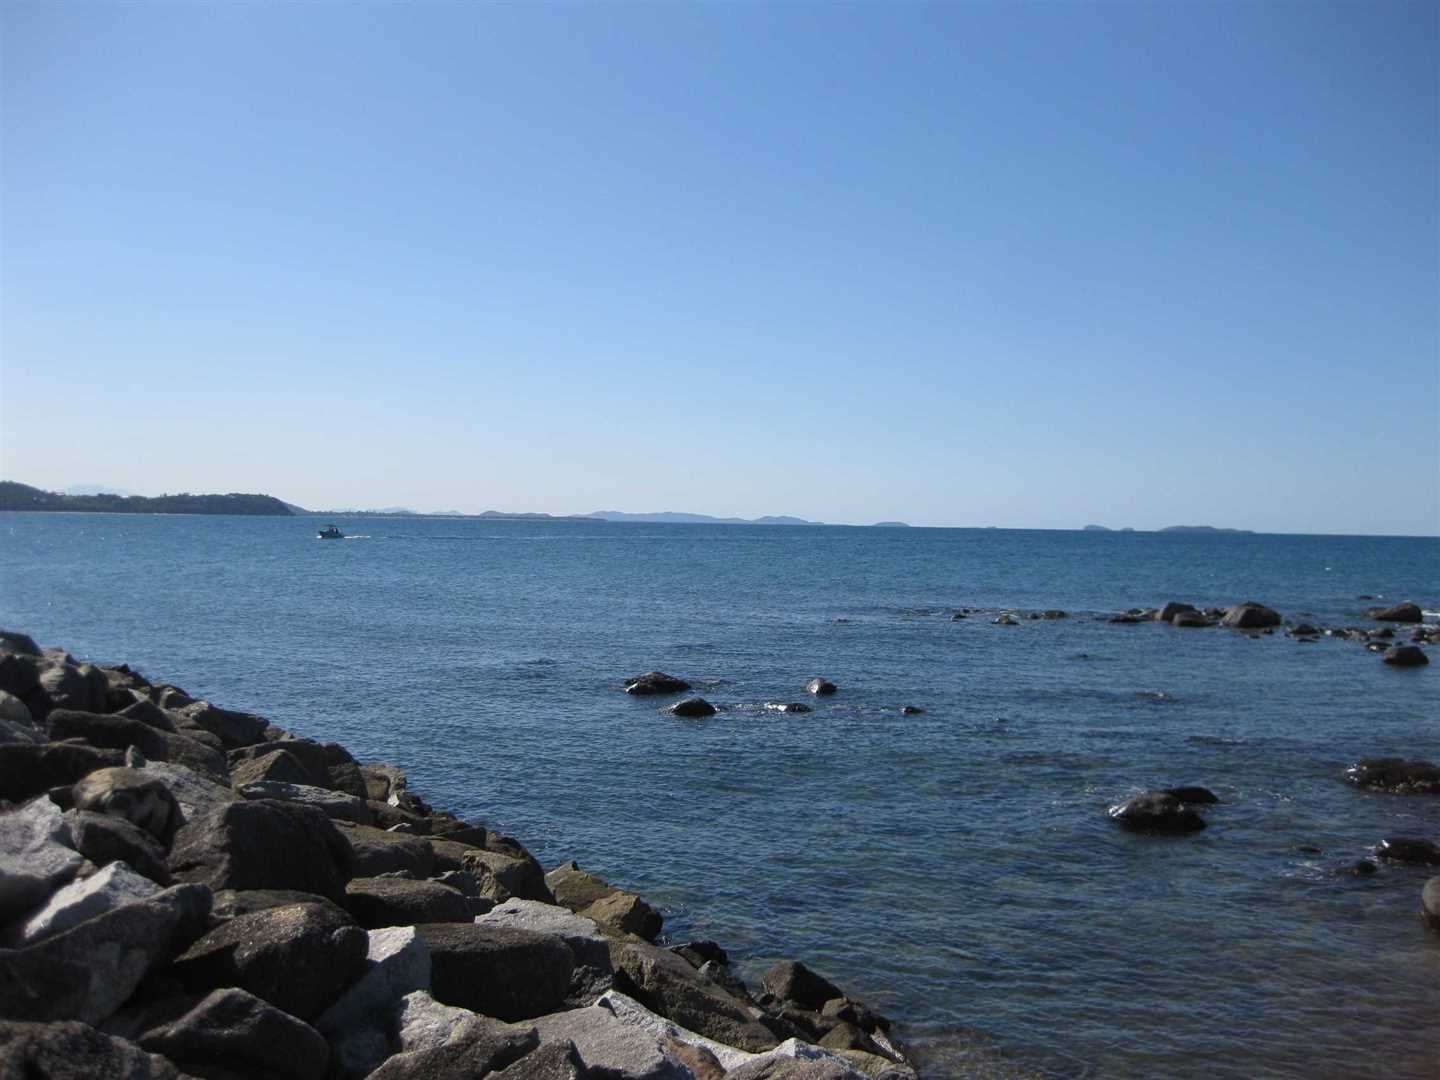 View from adjacent to Clump Point public boat ramp with part of breakwater to the left and some distant Islands to the North